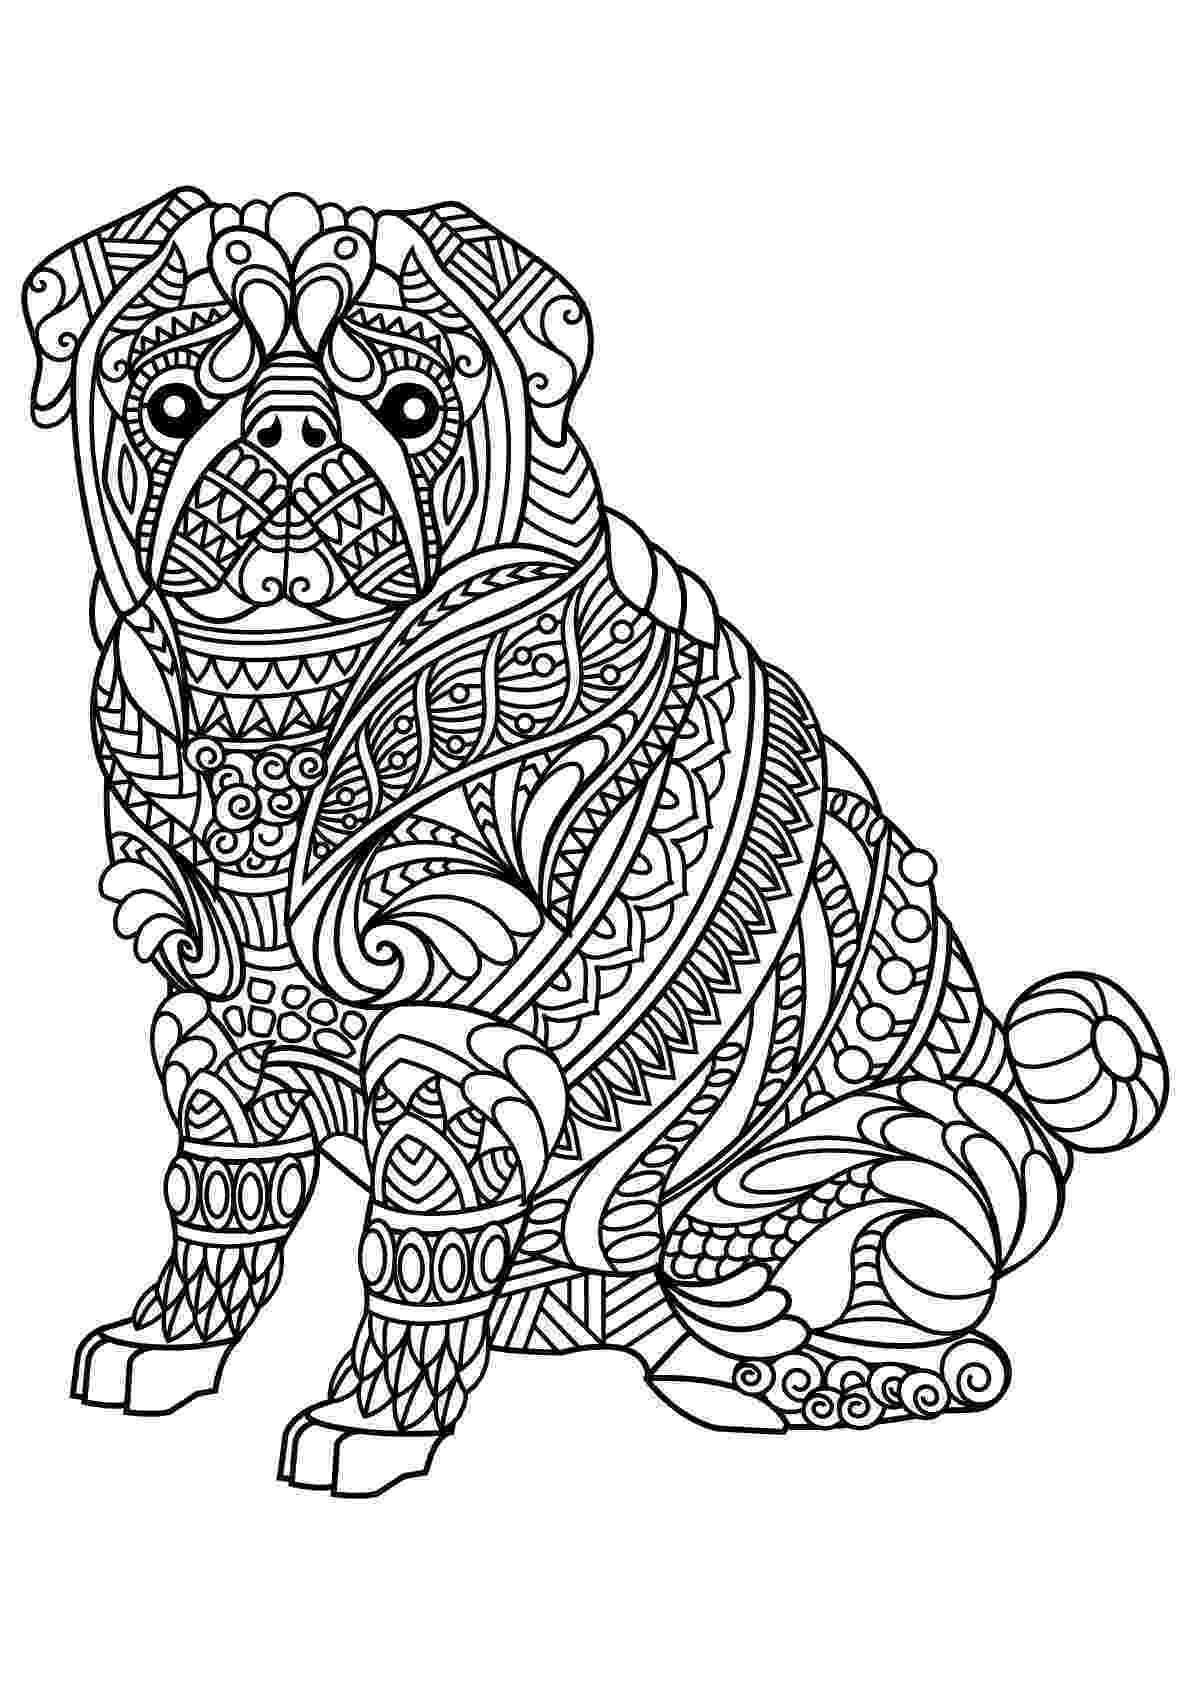 animal patterns colouring pages free book dog bulldog dogs adult coloring pages patterns animal pages colouring